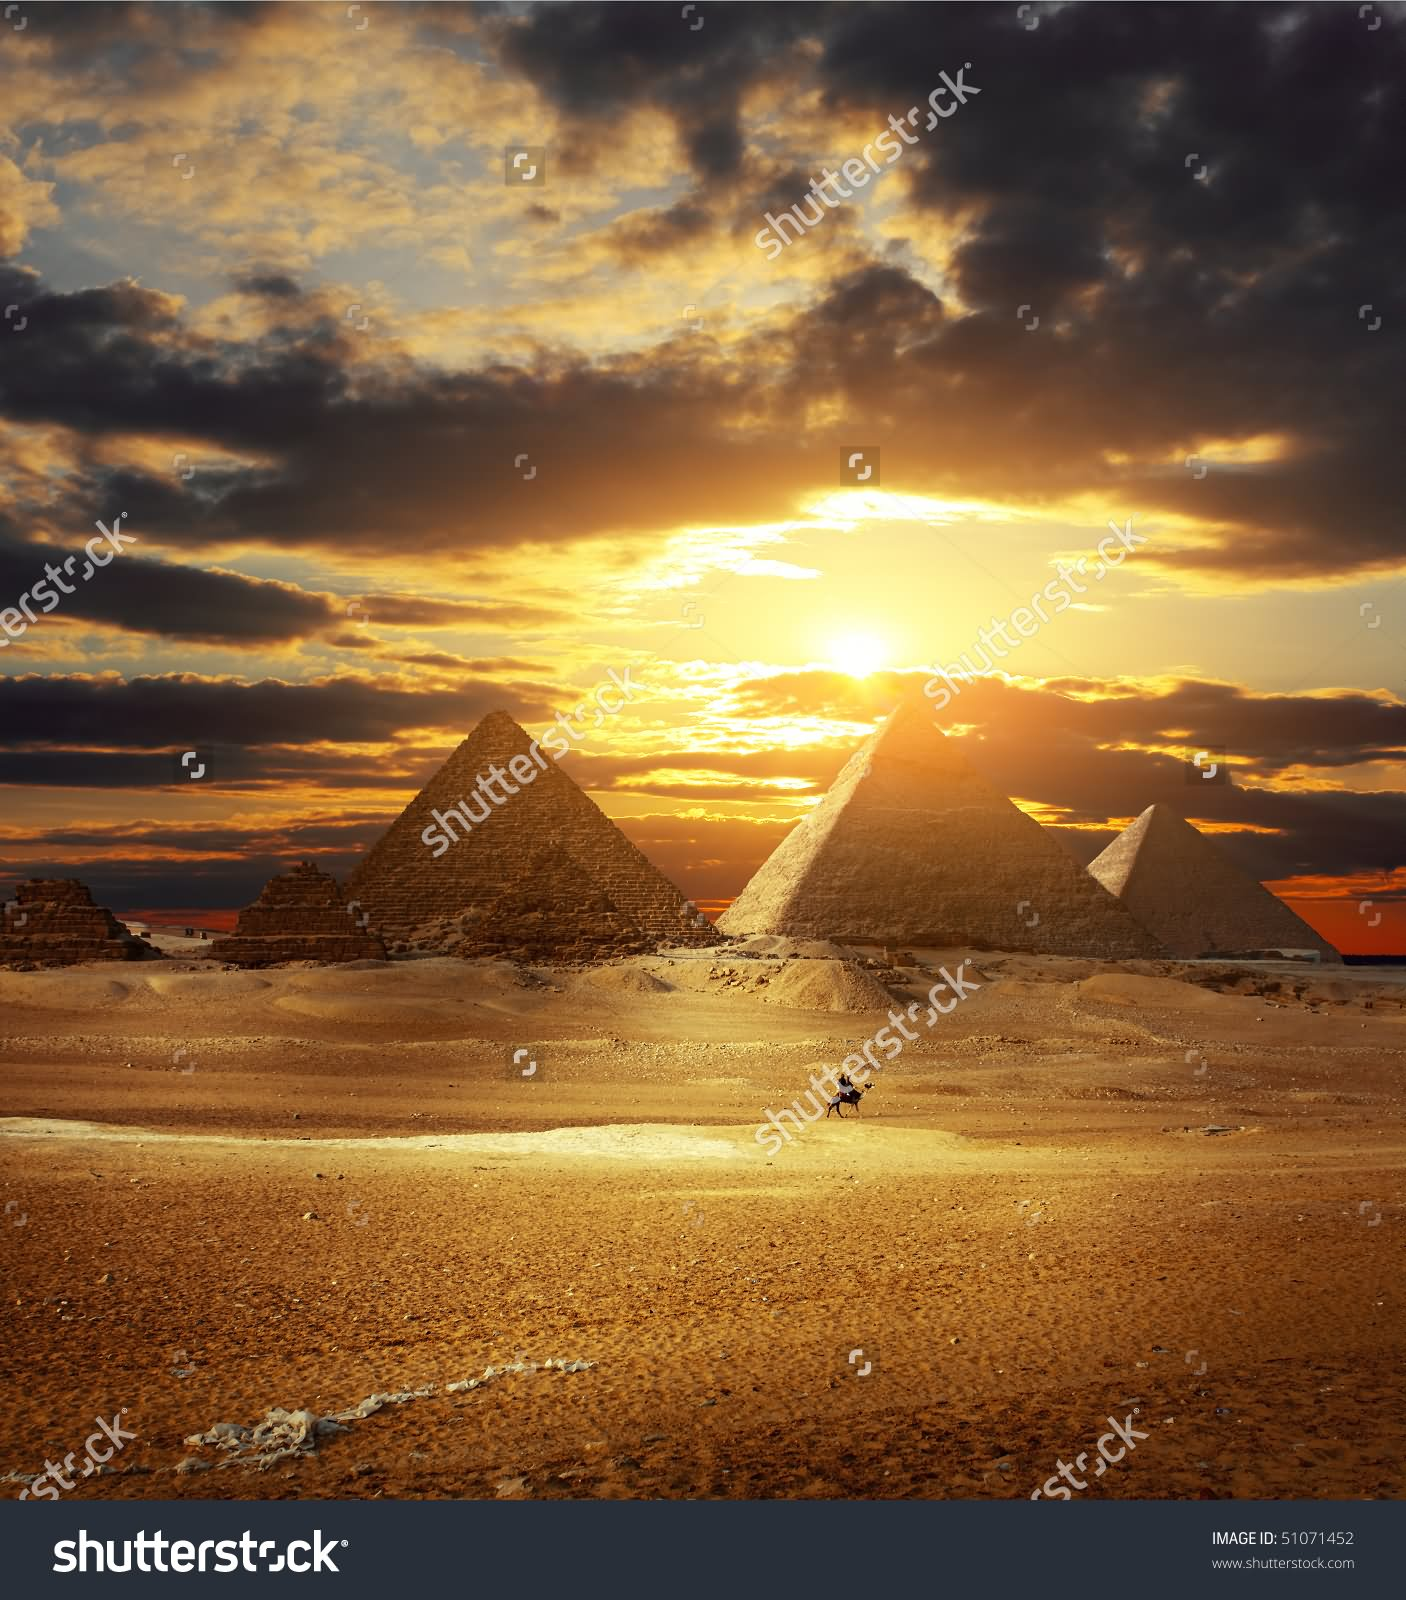 Sunset Over Egyptian Pyramids